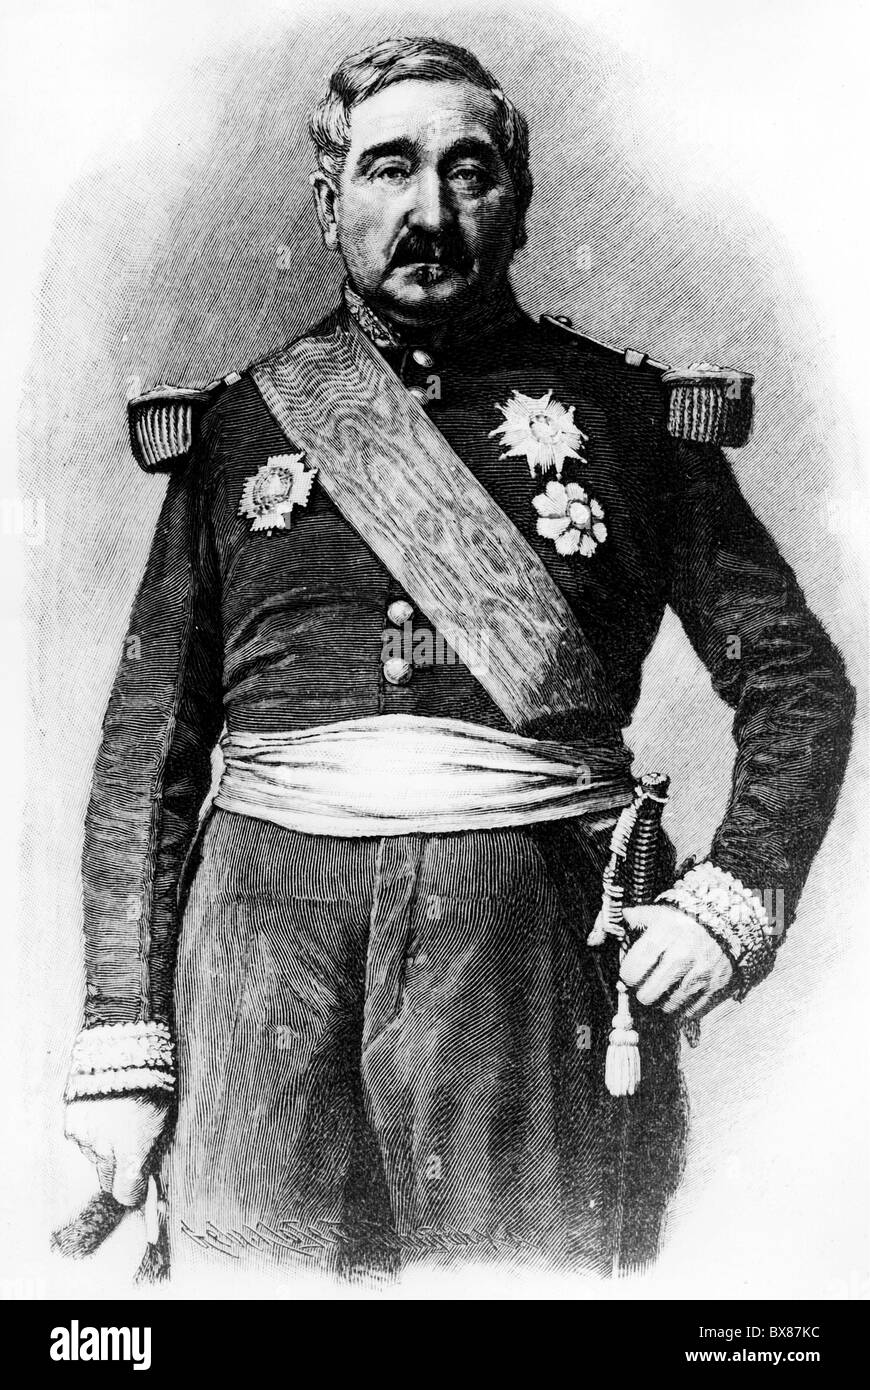 Cousin-Montauban, Charles, 24.6.1796 - 8.1.1878, French general, Minister of war 10.8.- 4.9.1870, half length, wood - Stock Image